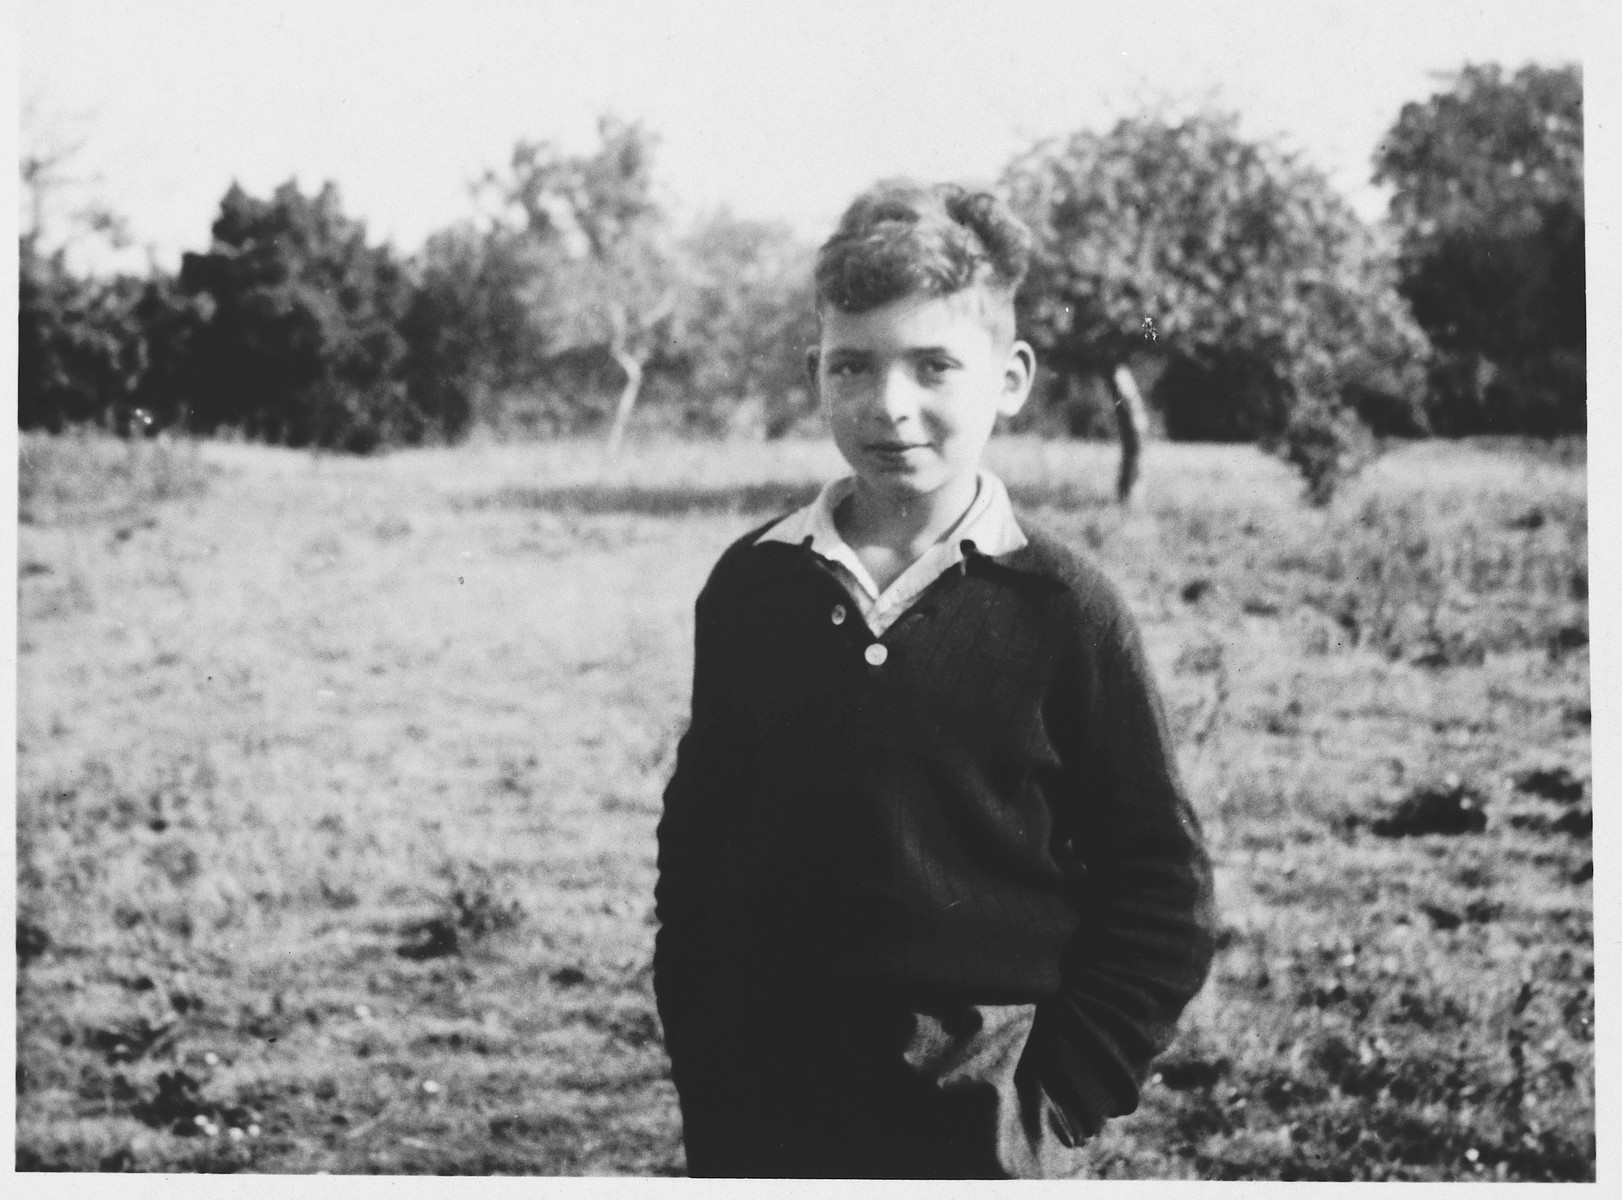 Portrait of Gunther Abrahamson in the Priory, a children's home in Selkirk Scotland.  Netta Pringle, the assistant matron in the Priory, formed warm relations with many of the twenty-one Jewish children.  She took most of the photographs, which she assembled in the album and wrote the inscriptions.  In 1996 Miss Pringle gave the album to Gunther.